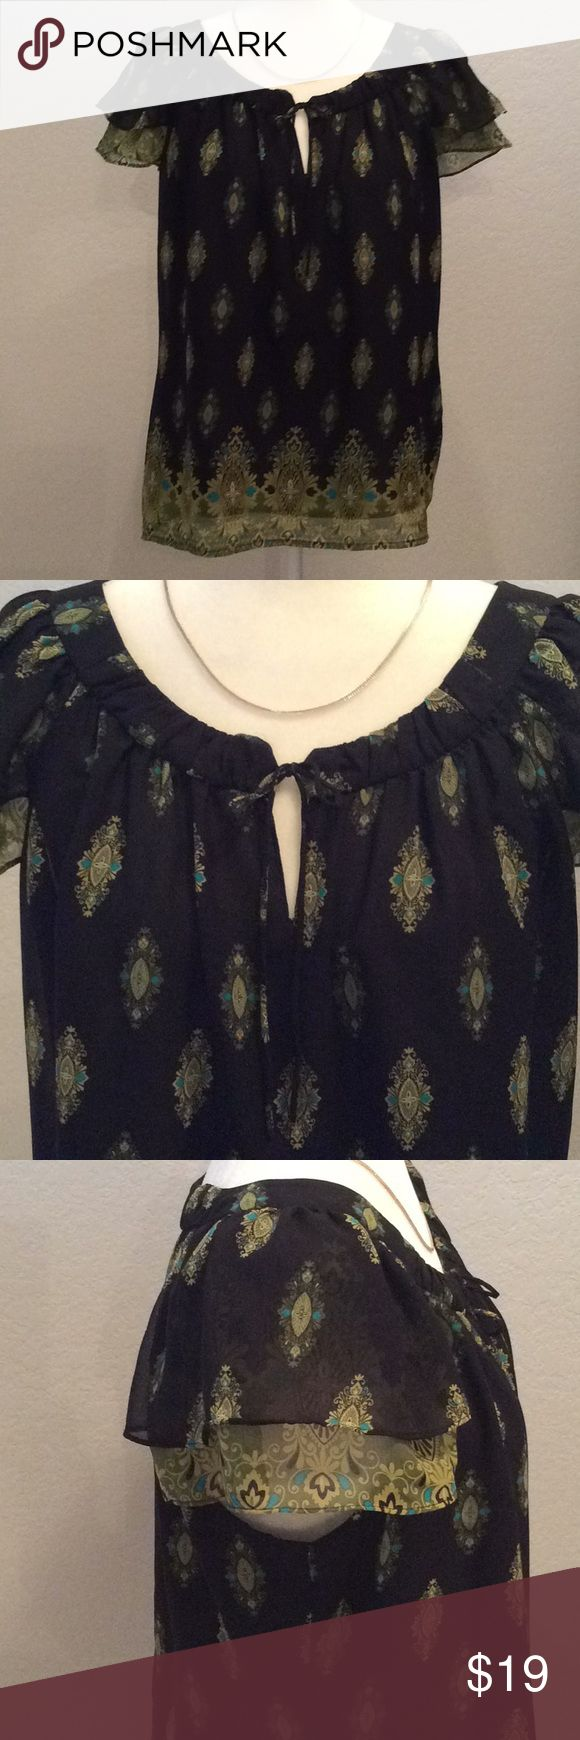 Apt.9 Capped Sleeve Dressy Top Apt. 9 Capped sleeve top size L. 100% Polyester and has a solid black lining to prevent see through. Great condition. Very cute! Pair with white shorts or capris for a Spring/Summer look! Apt. 9 Tops Blouses